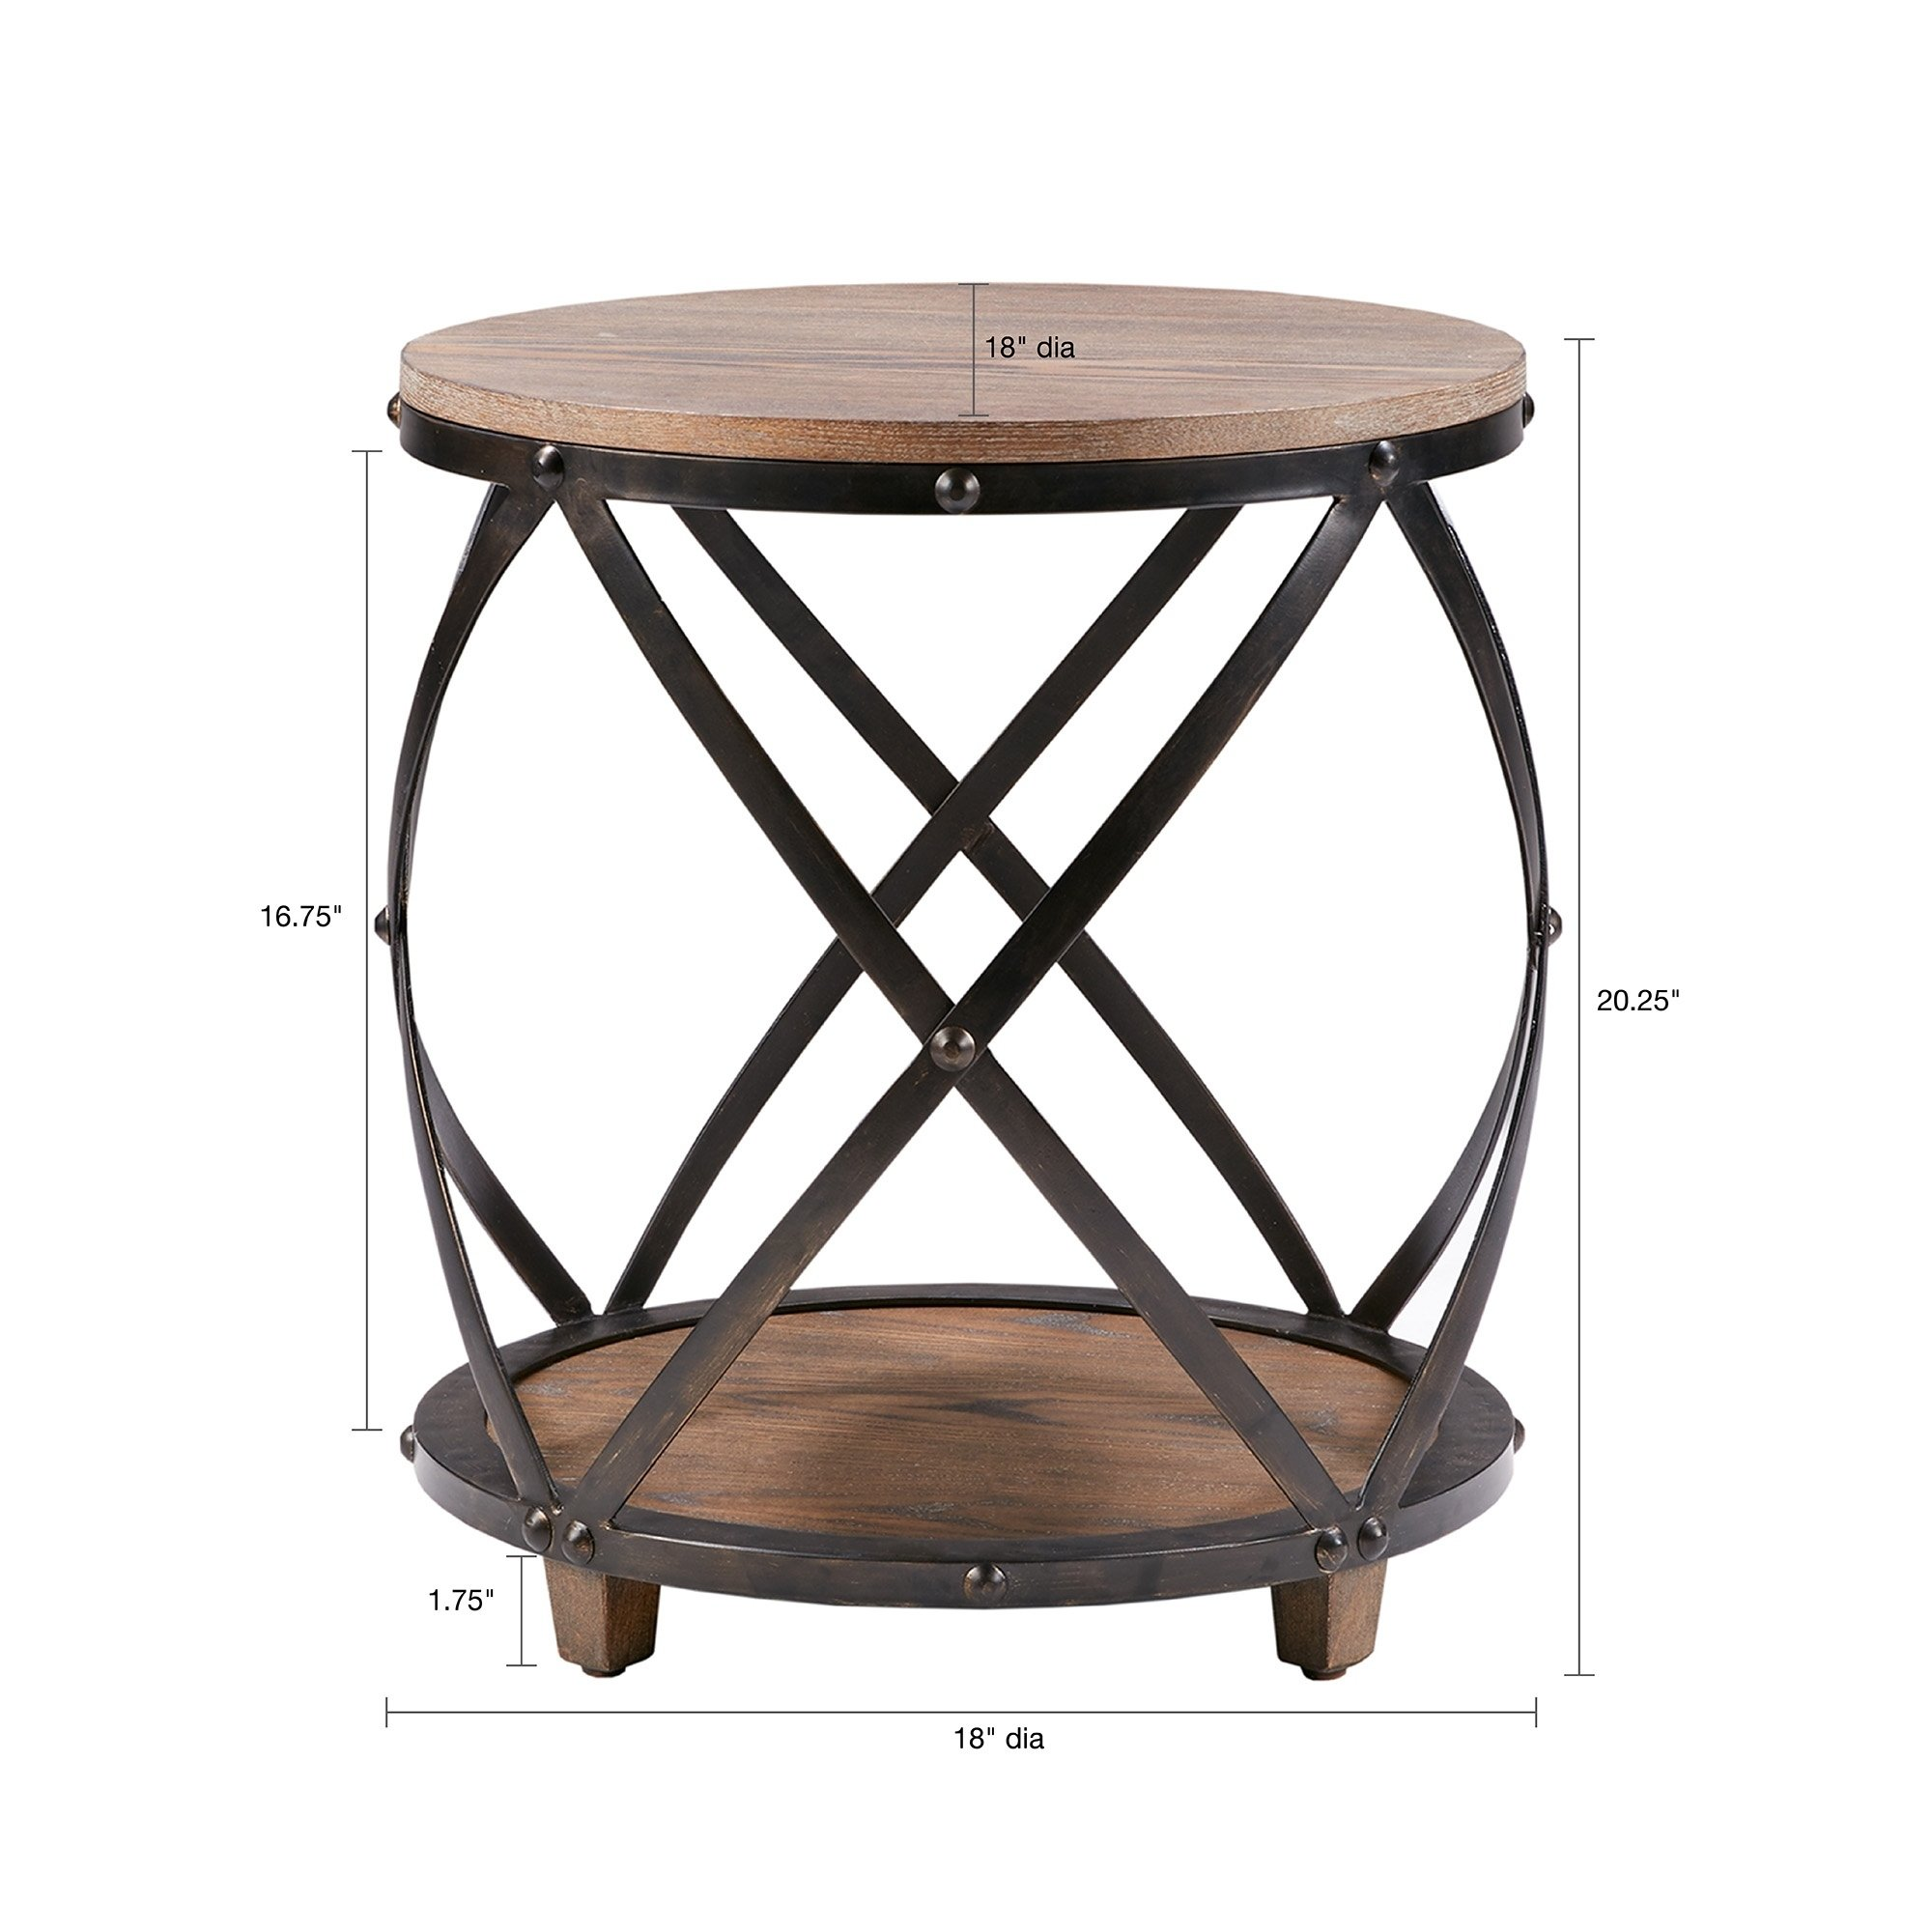 madison park kagen antique bronze bent metal accent table outdoor free shipping today cool nest tables side styles small armchair white round tray faux marble black and patio